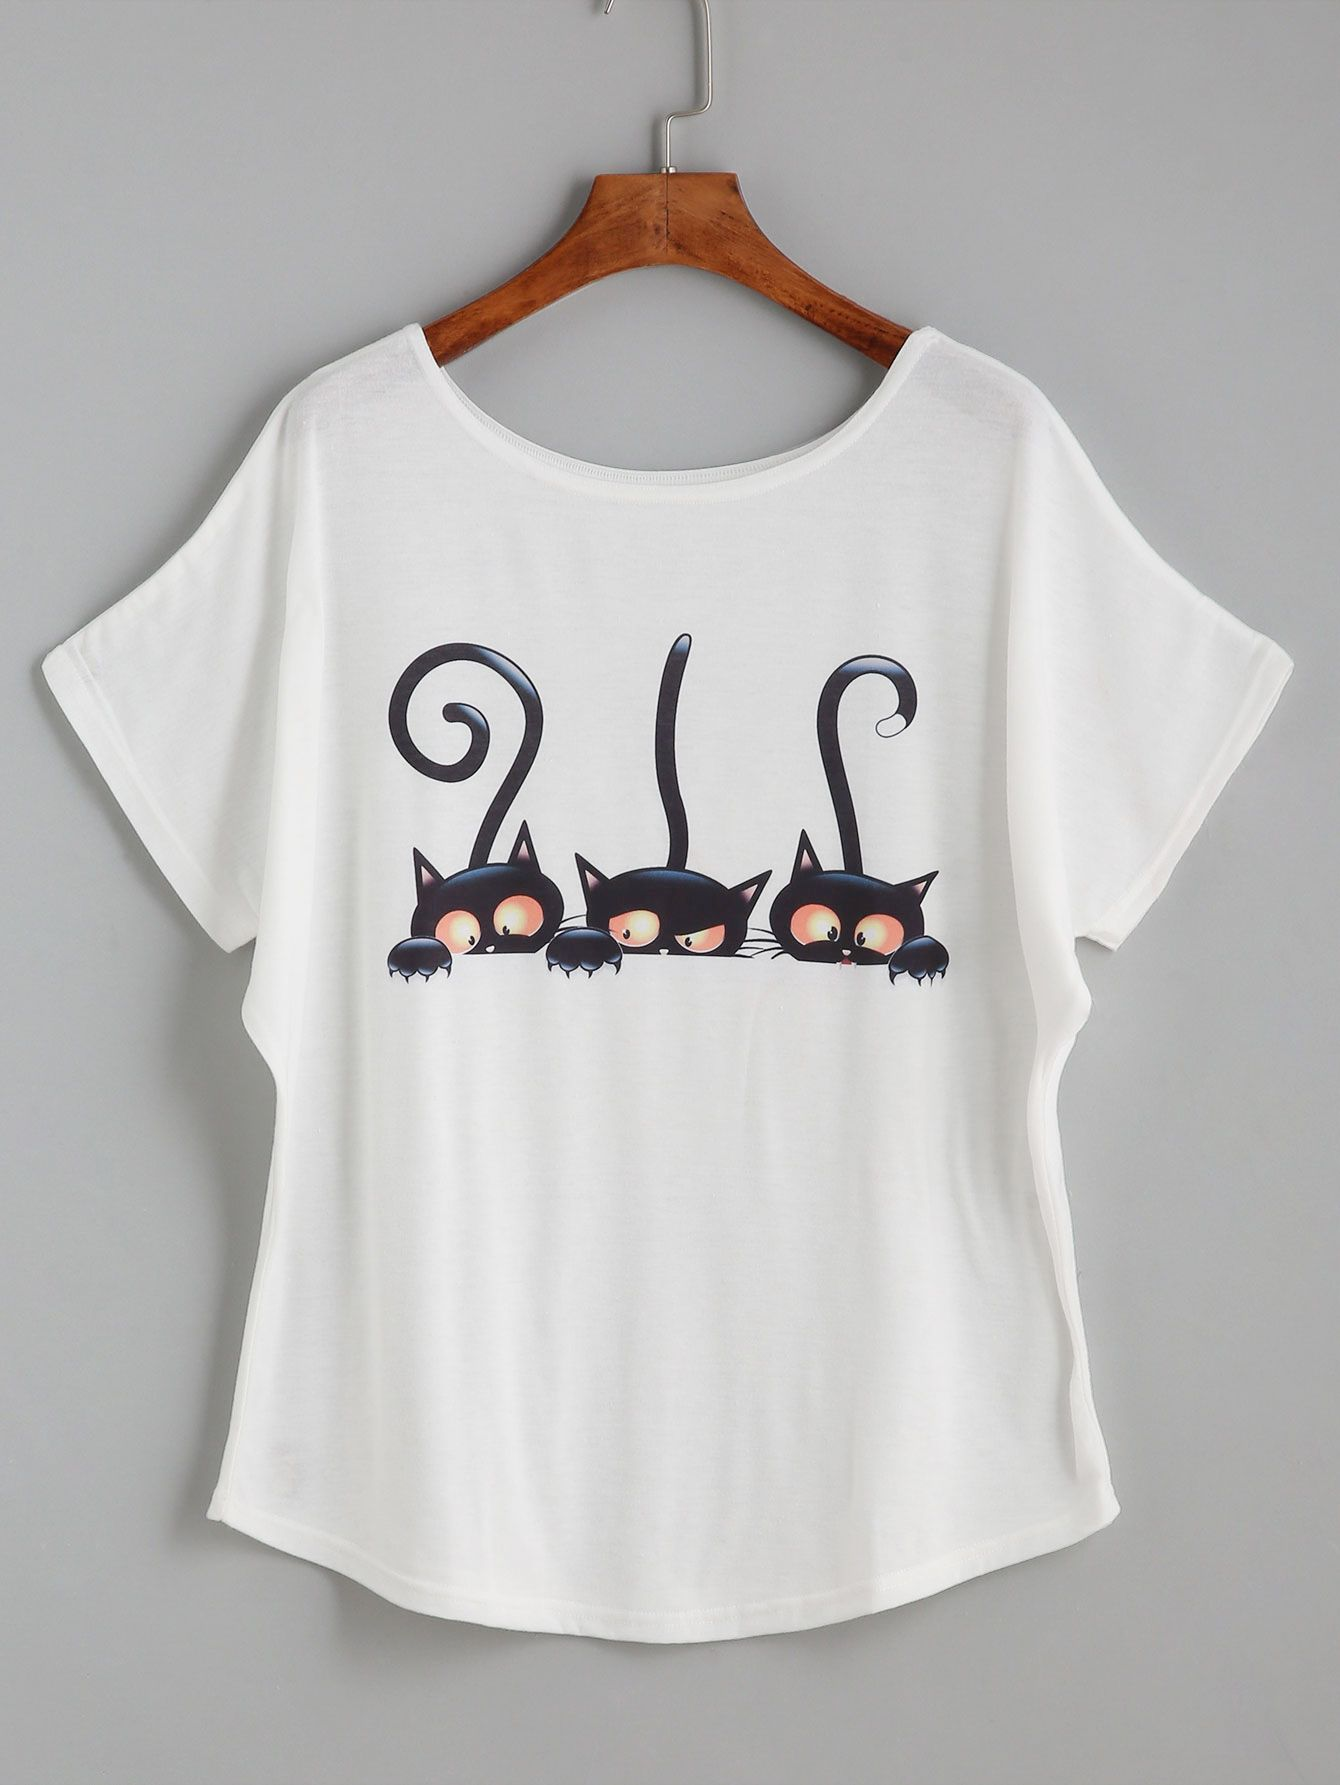 White Cartoon Cat Print Loose T-shirt   Customização, Camisetas ... 816cfcb800